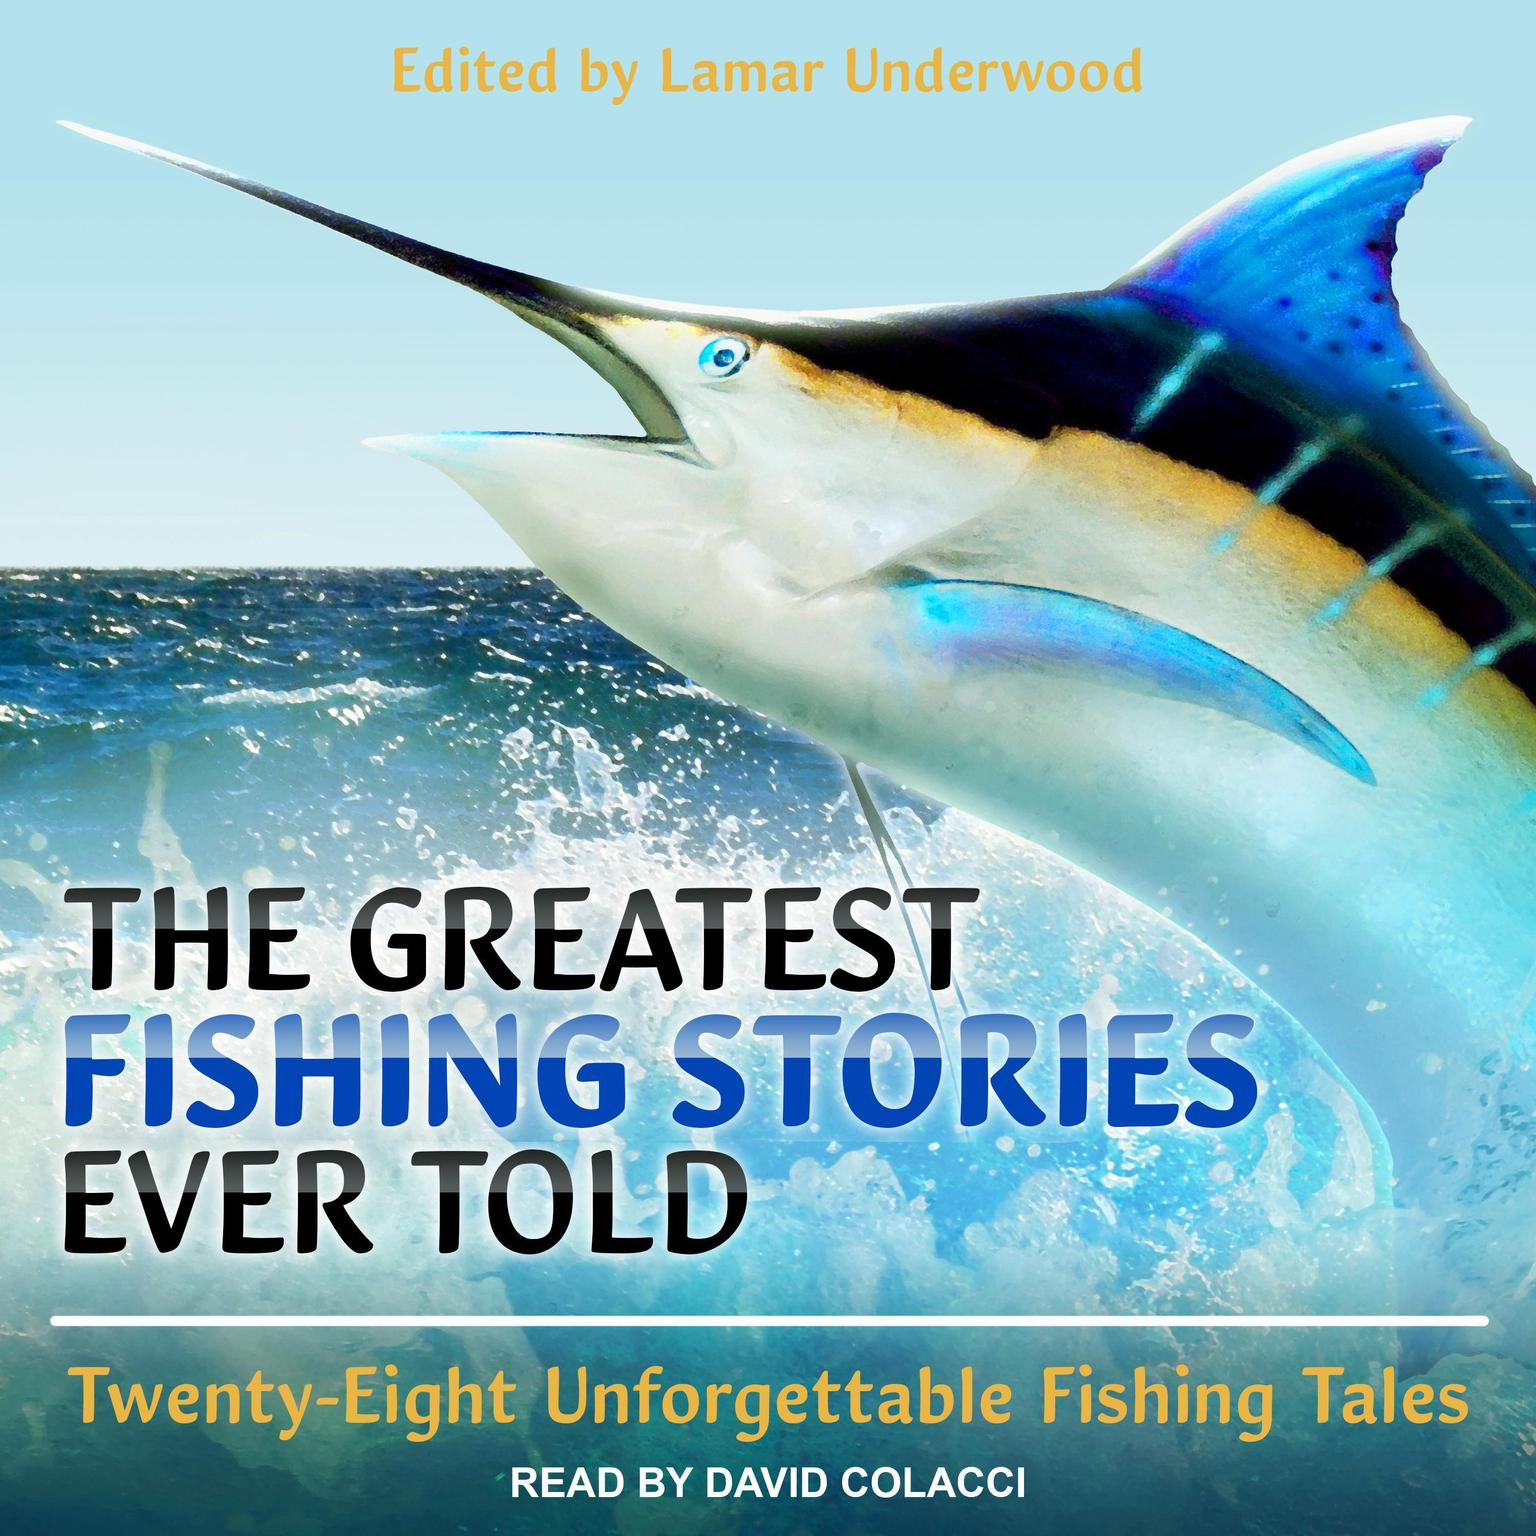 The Greatest Fishing Stories Ever Told: Twenty-Eight Unforgettable Fishing Tales Audiobook, by Lamar Underwood